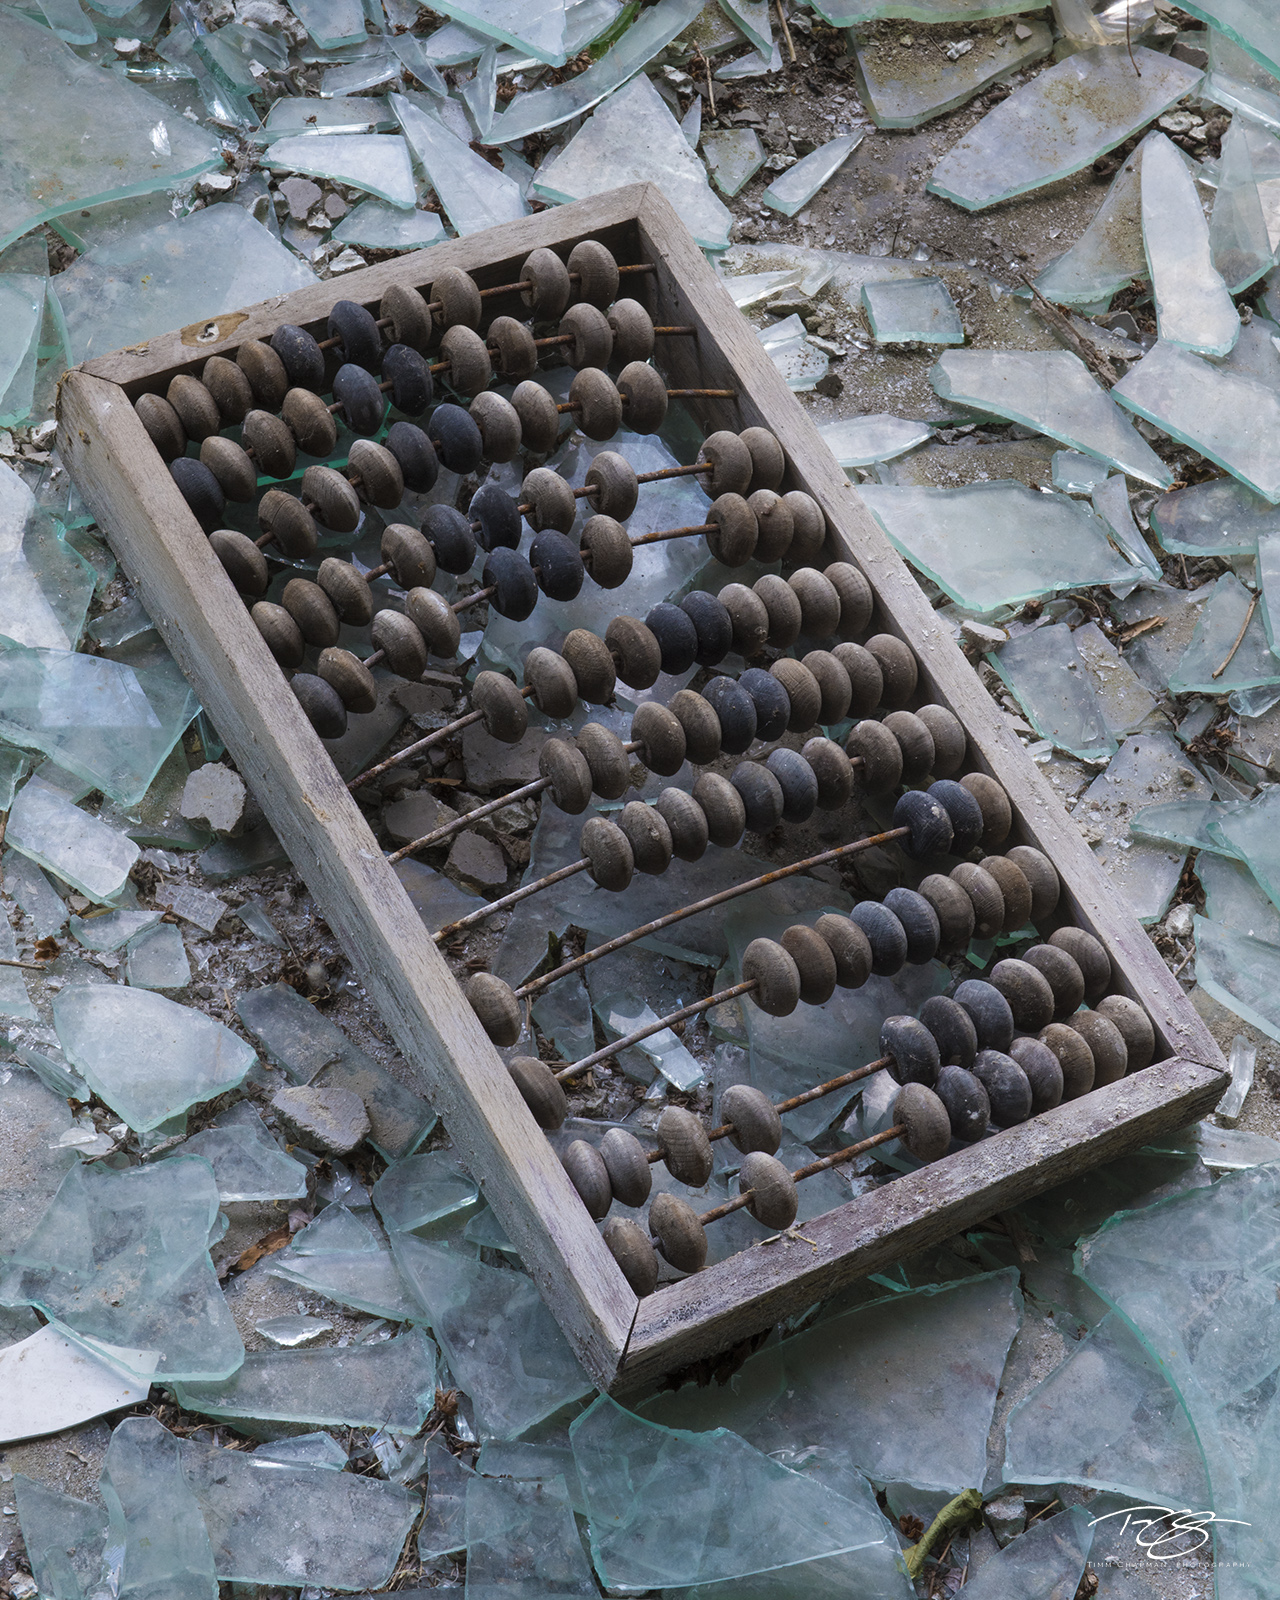 chernobyl, chornobyl, pripyat, exclusion zone, abandoned, forgotten, wasteland, radioactive, decay, broken glass, abacus, calculator, photo